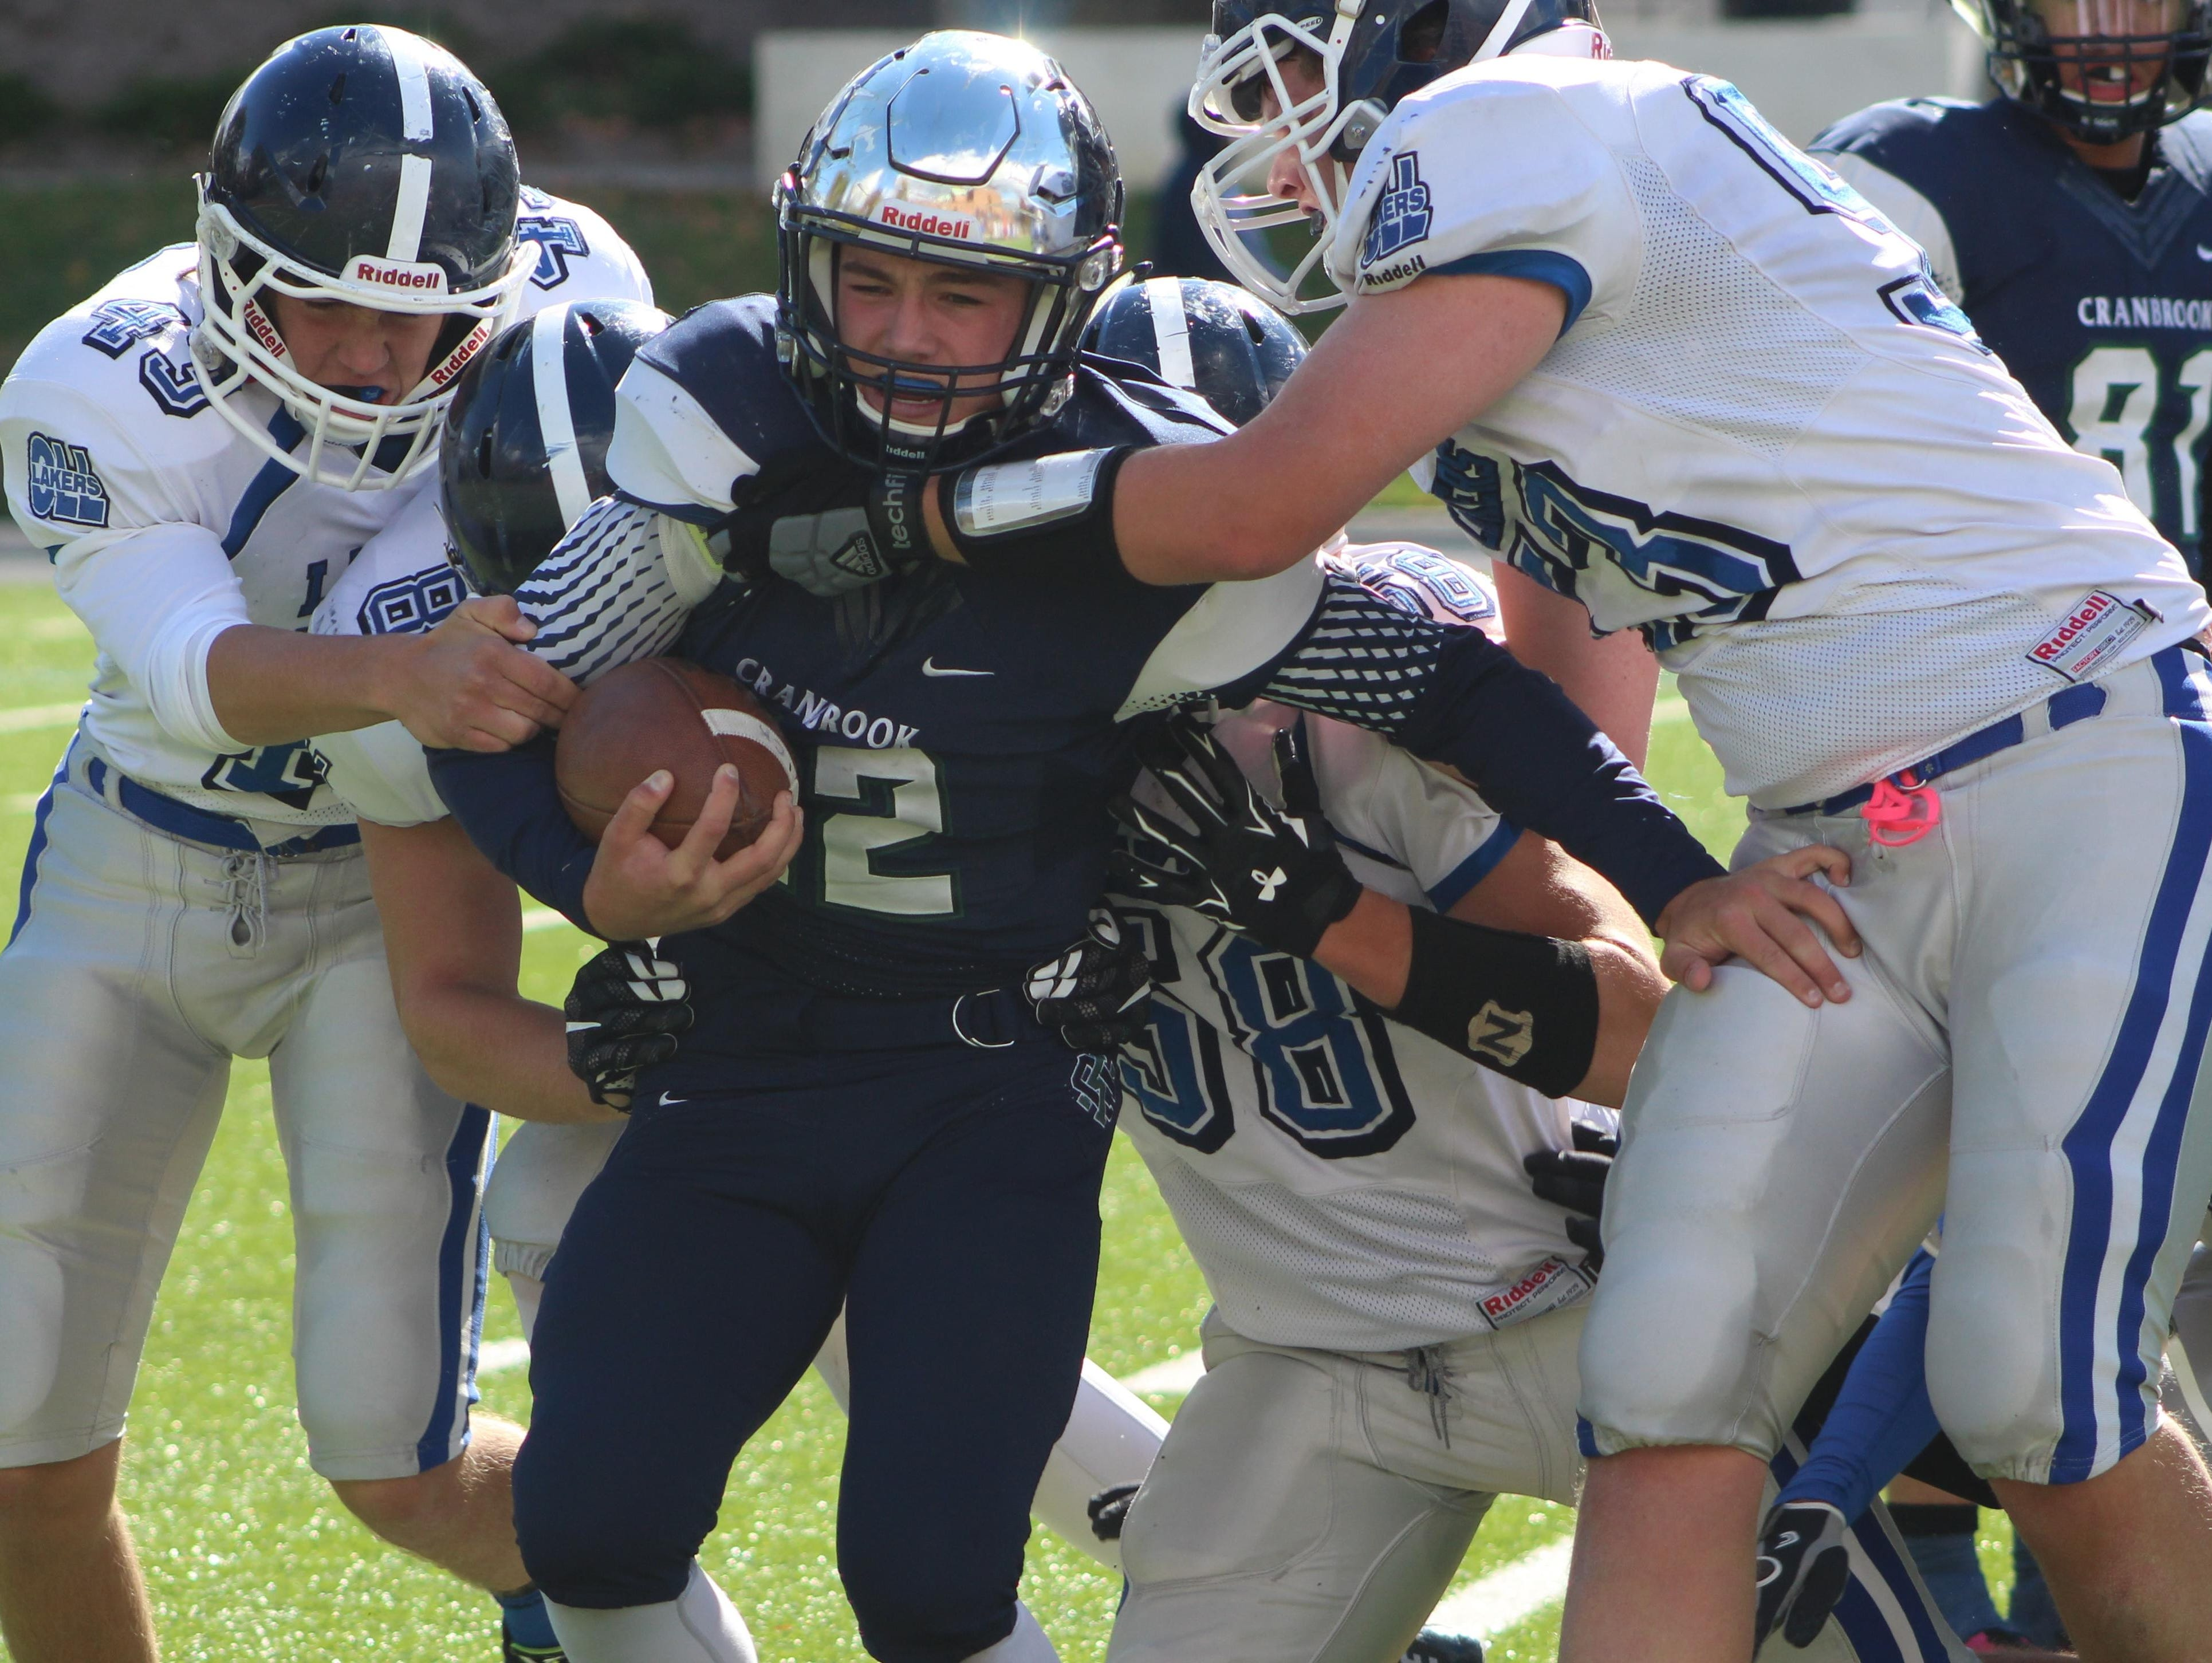 Cranbrook Kingswood's Tristan Knoer (22), shown in a game earlier this season against Lakes, scored a touchdown in Friday's playoff victory over Macomb County foe South Lake.